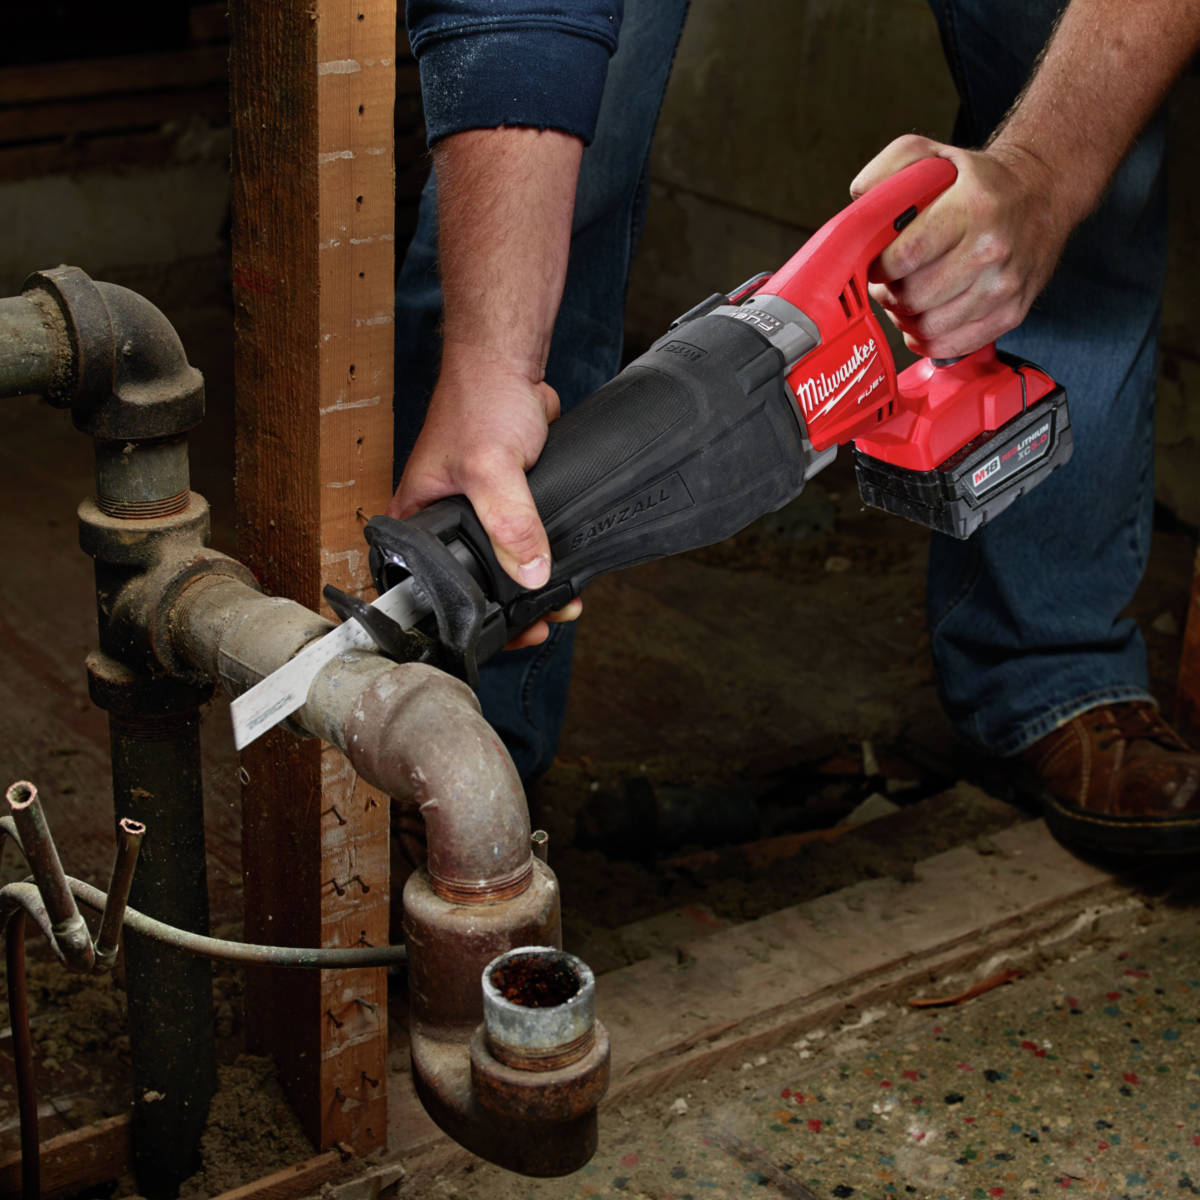 M18 FUEL Lithium-Ion Sawzall Reciprocating Saw cuts faster than corded counterparts